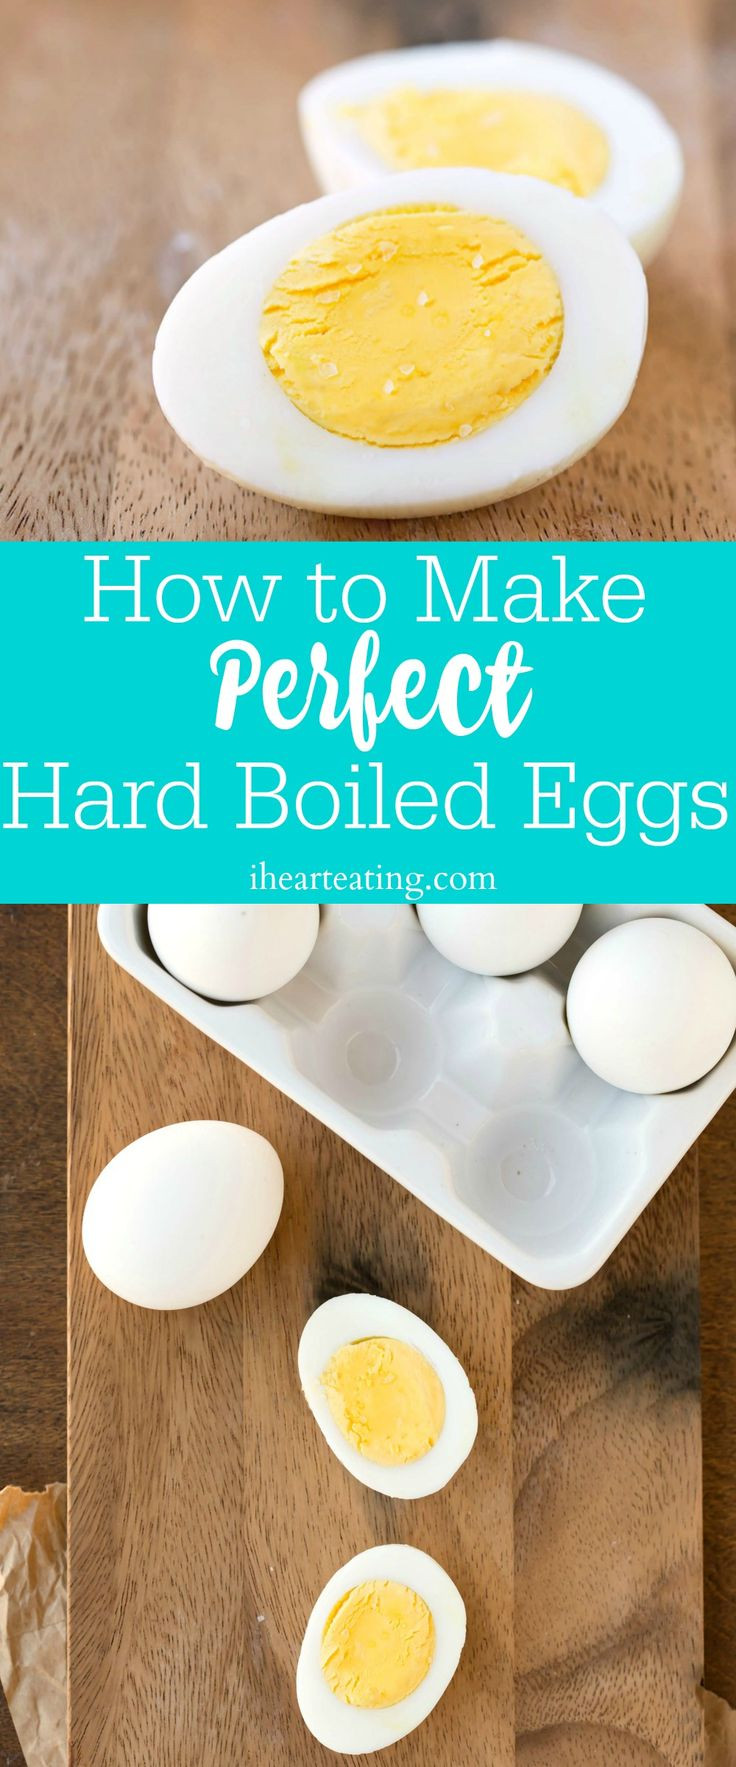 How to Make Perfect Hard Boiled Eggs - easy step-by-step recipe. Great for meal prep or snacks. No more gray yolks!